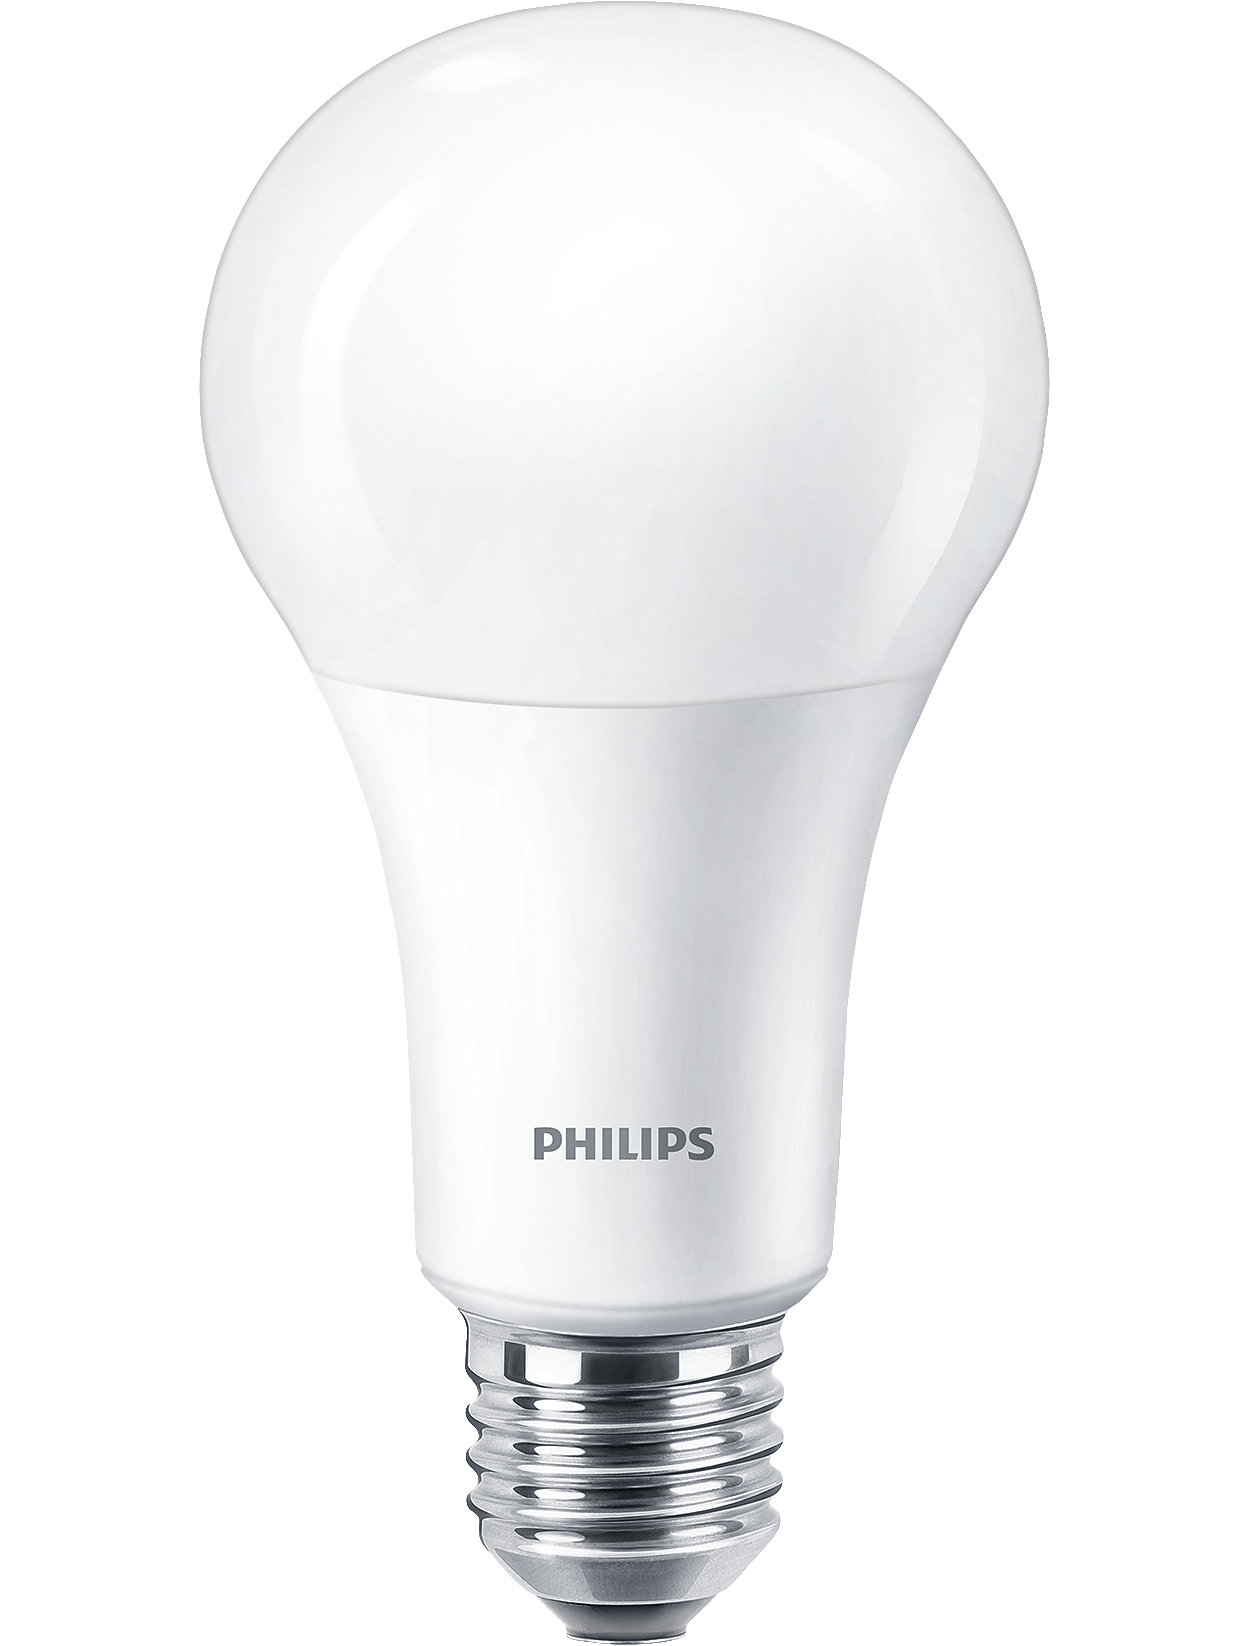 corepro ledbulb d 13 5 100w a67 e27 827 corepro ledbulbs philips lighting. Black Bedroom Furniture Sets. Home Design Ideas